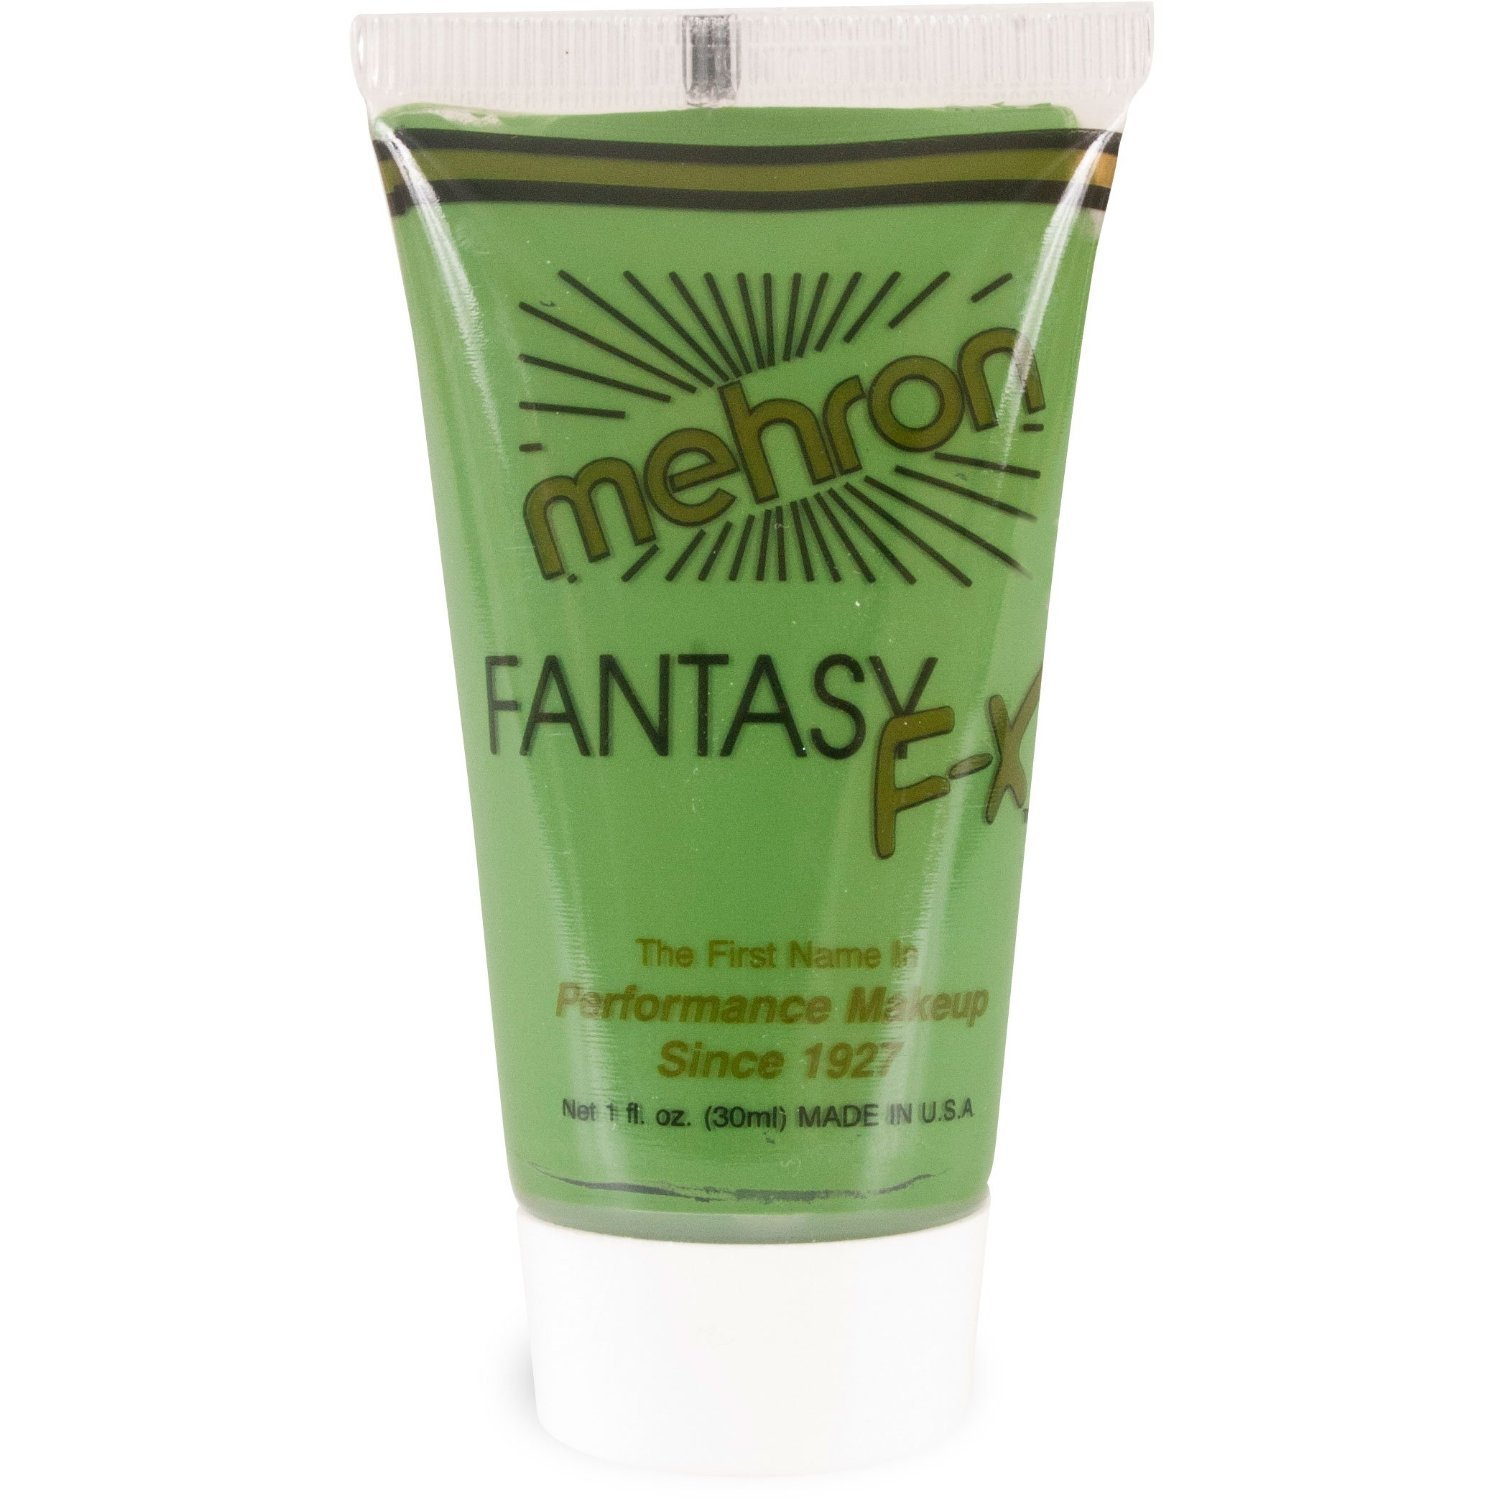 FFX (1oz, Green) Tube Make Up